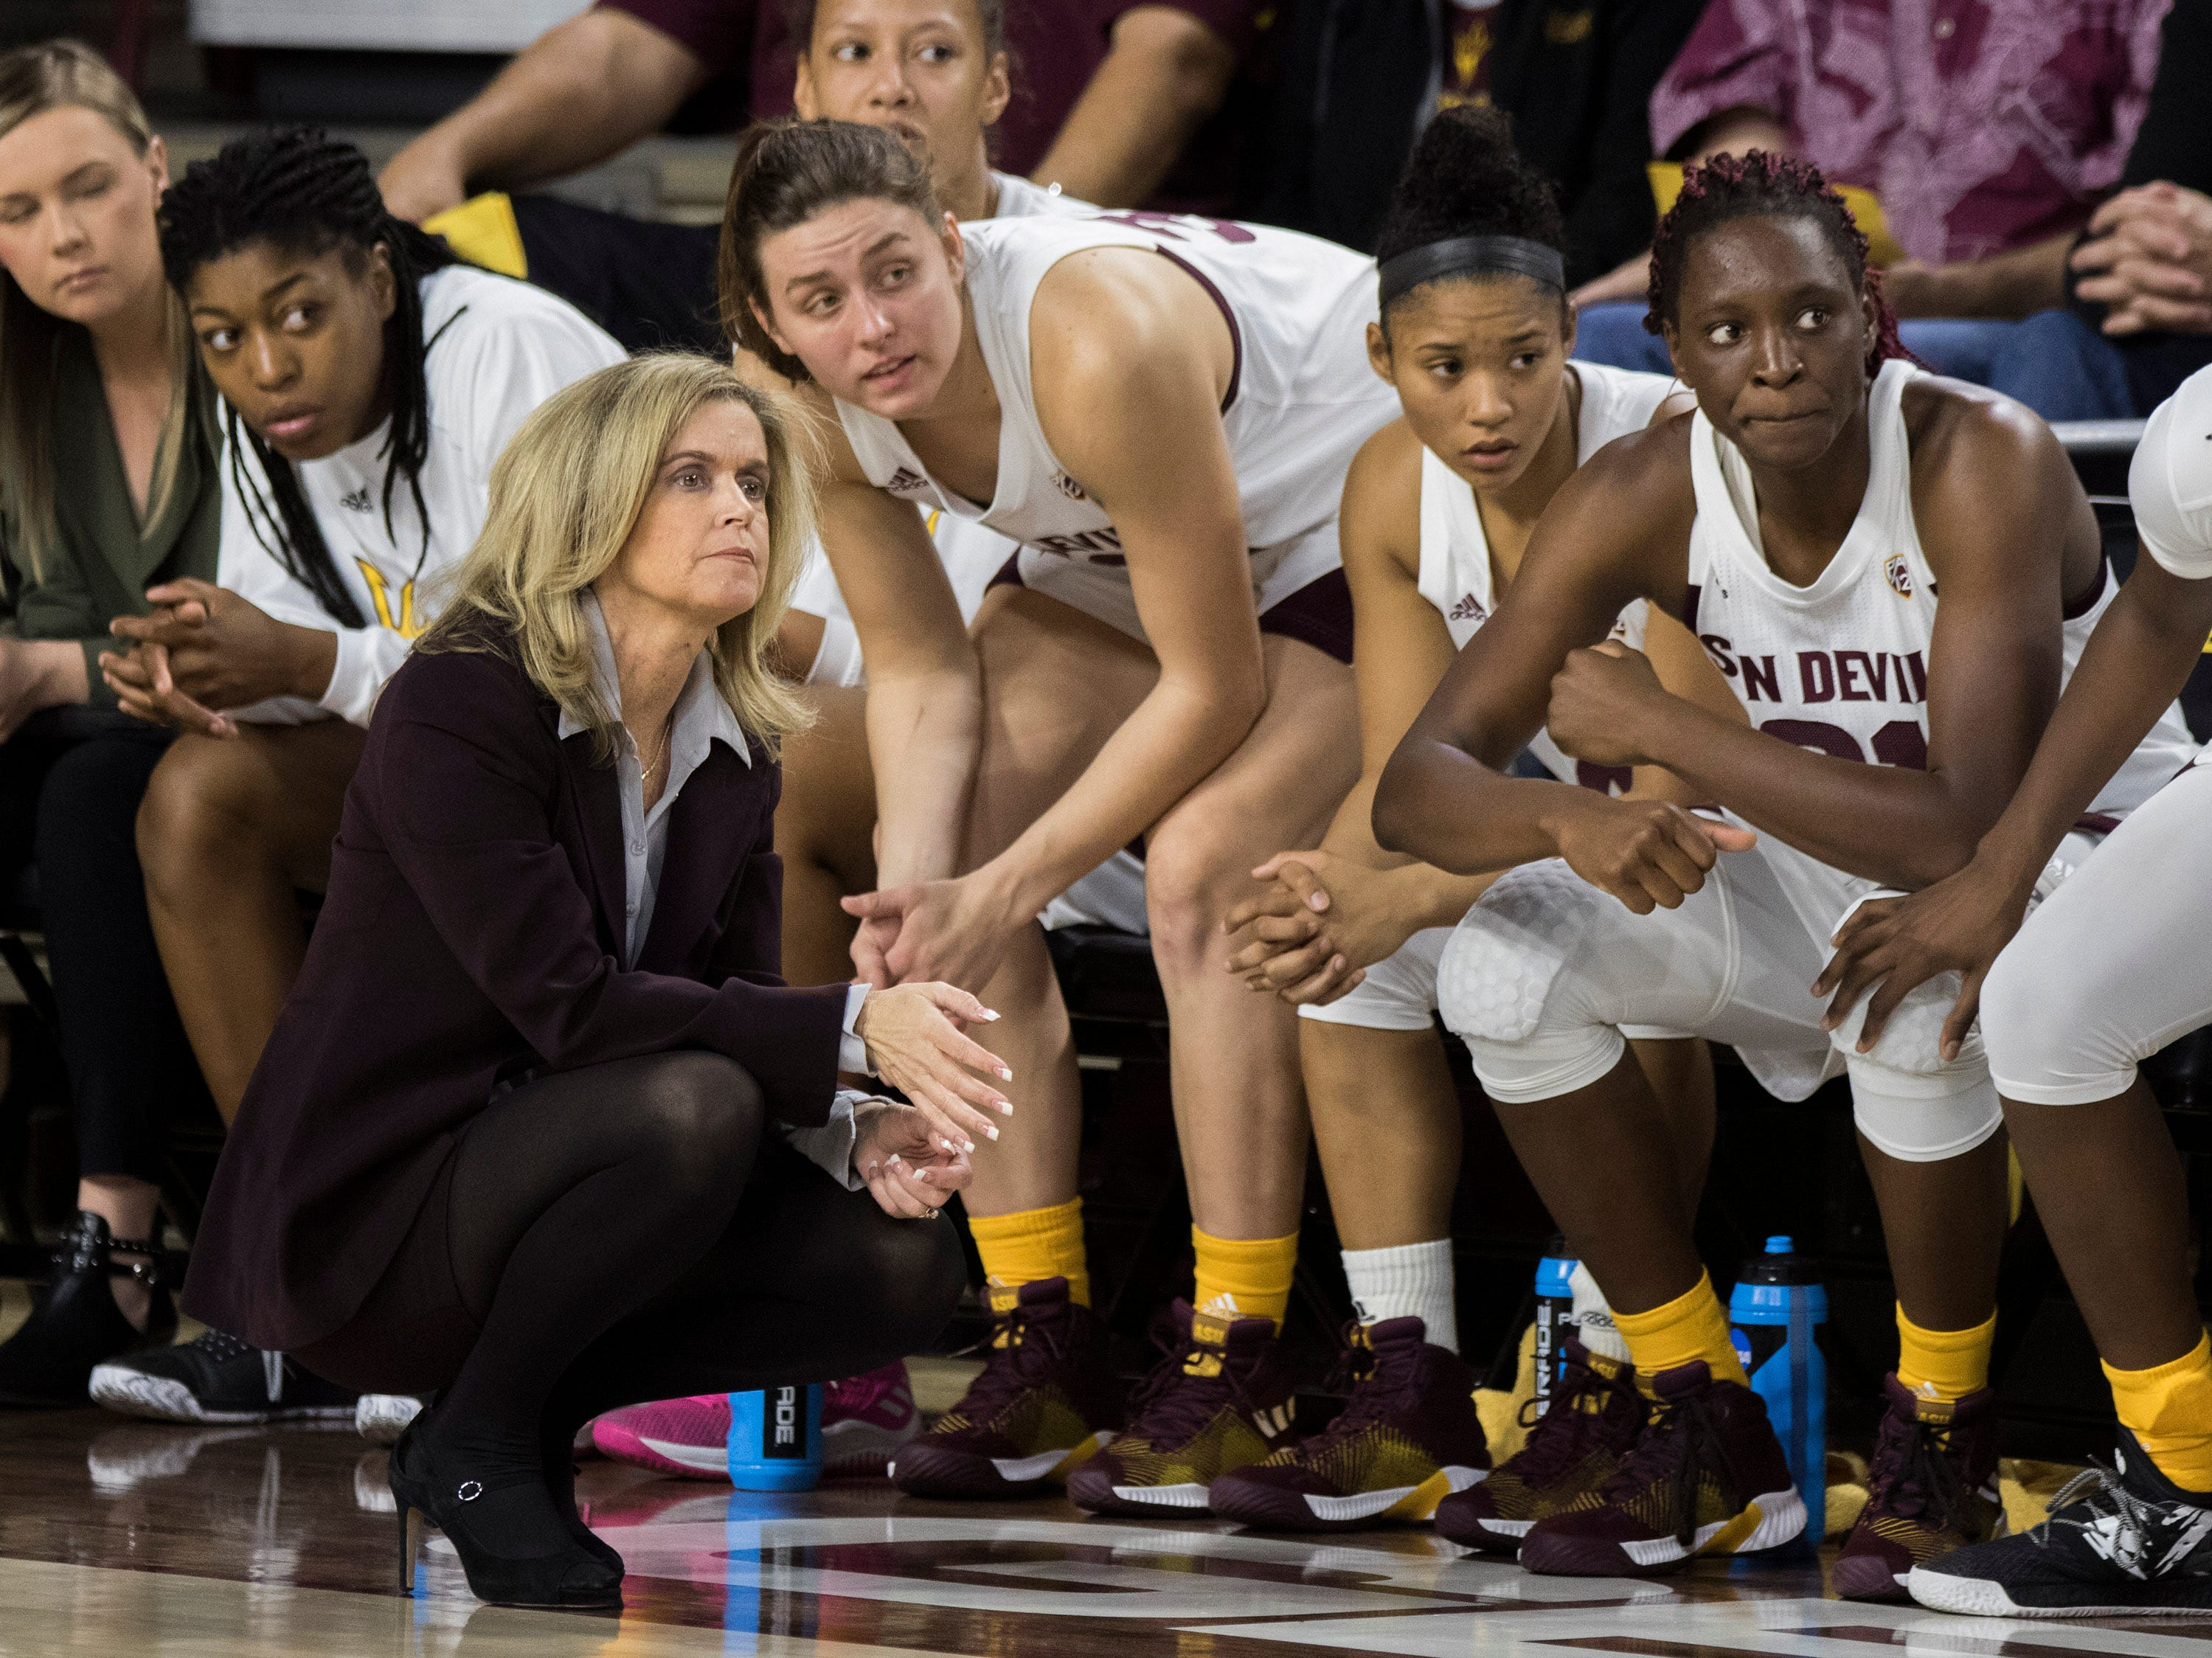 Arizona State University head coach Charli Turner Thorne watches her team against Southern during the first half of their game in Tempe, Friday, Dec. 7, 2018. Darryl Webb/Special for the Republic